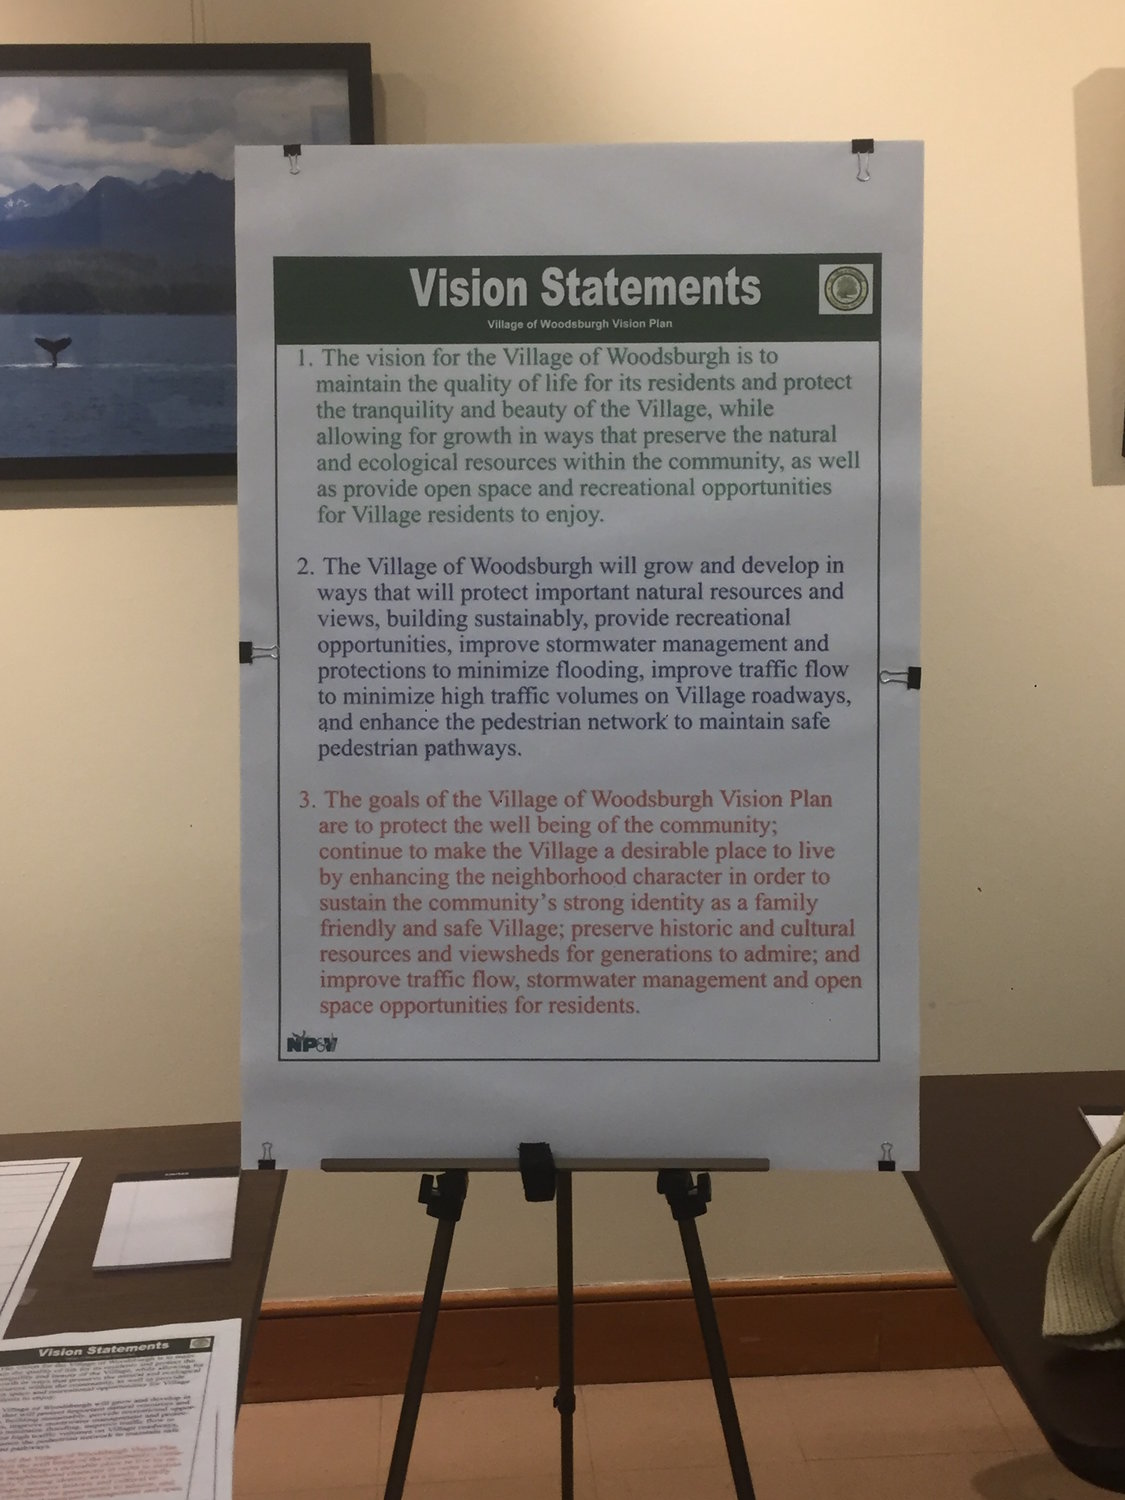 Woodsburgh village officials created the three vision statements for residents to build on through the in-person open house at Hewlett-Woodmere Public Library and the online survey.